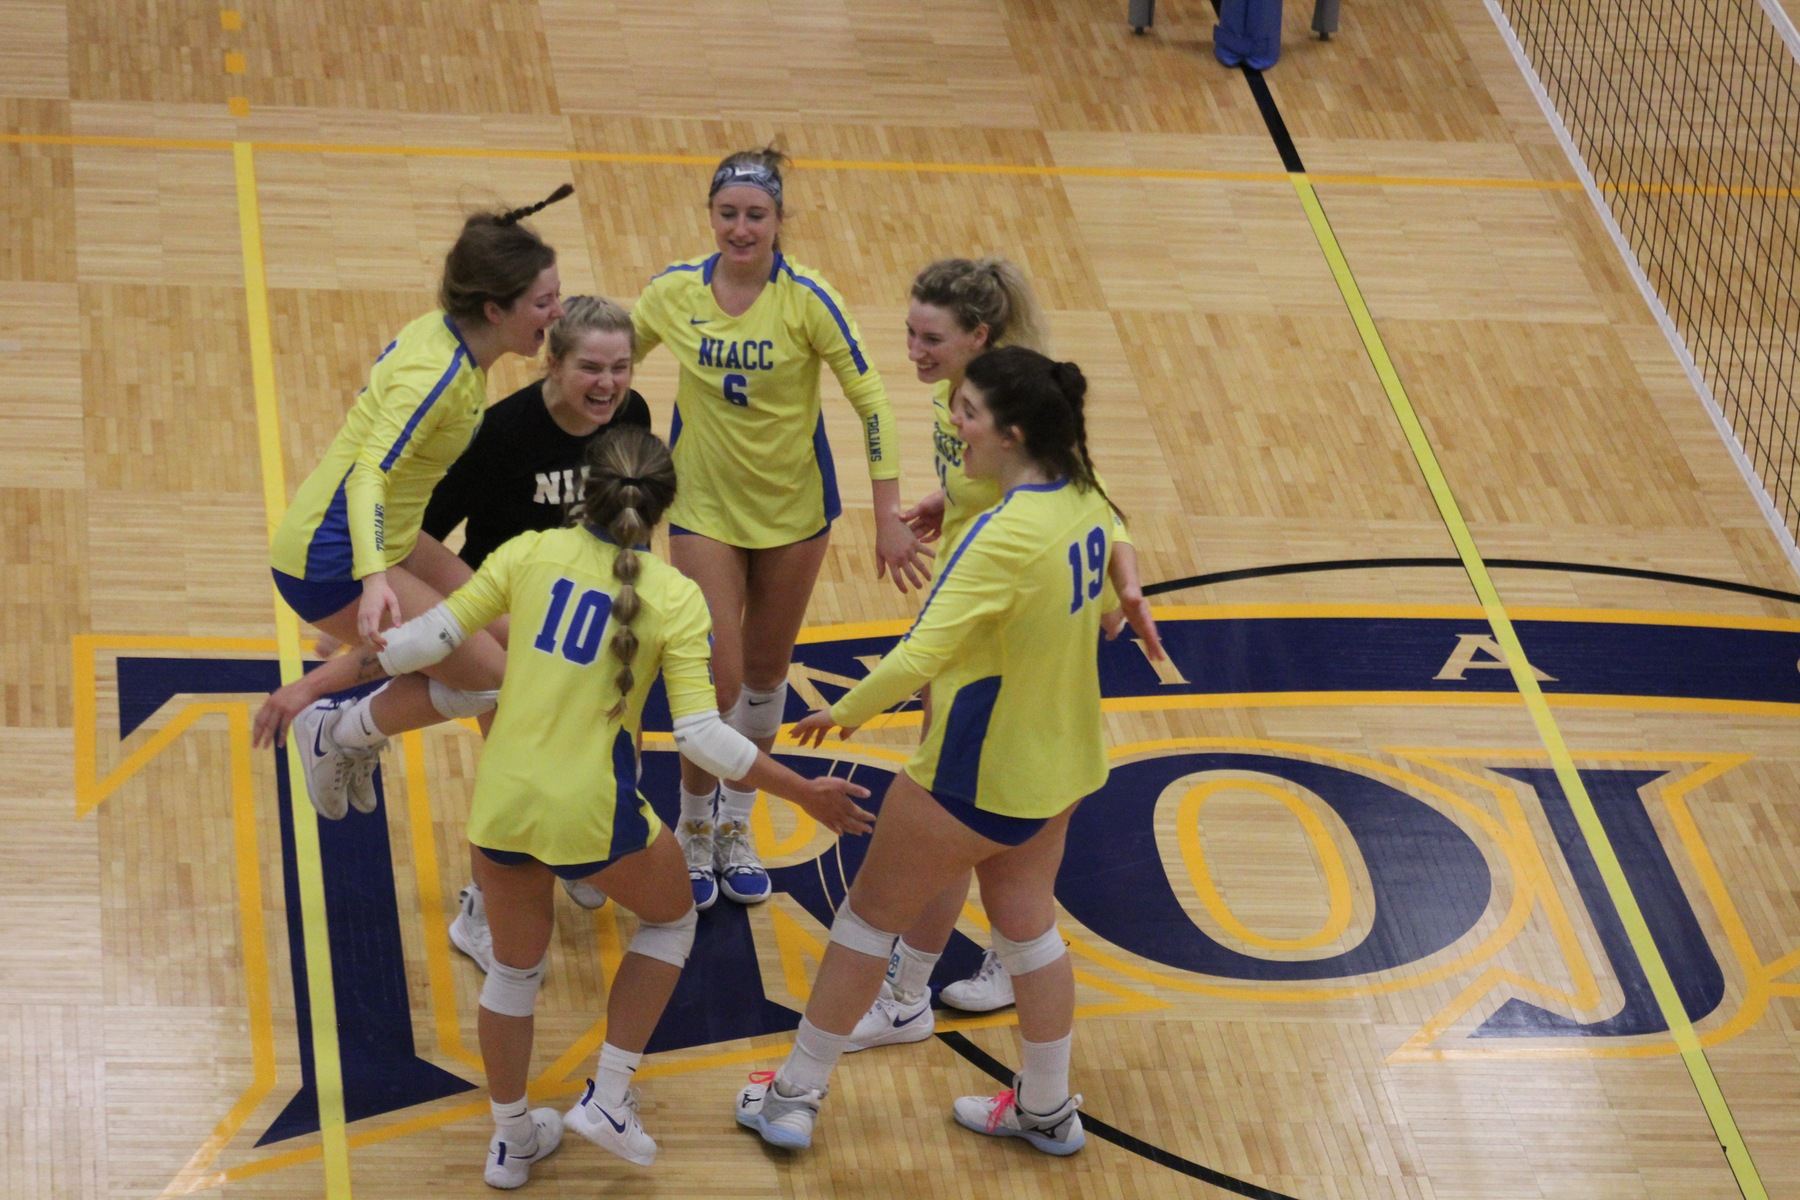 NIACC celebrates match point against Southeastern in the opening round of the regional tournament Saturday.